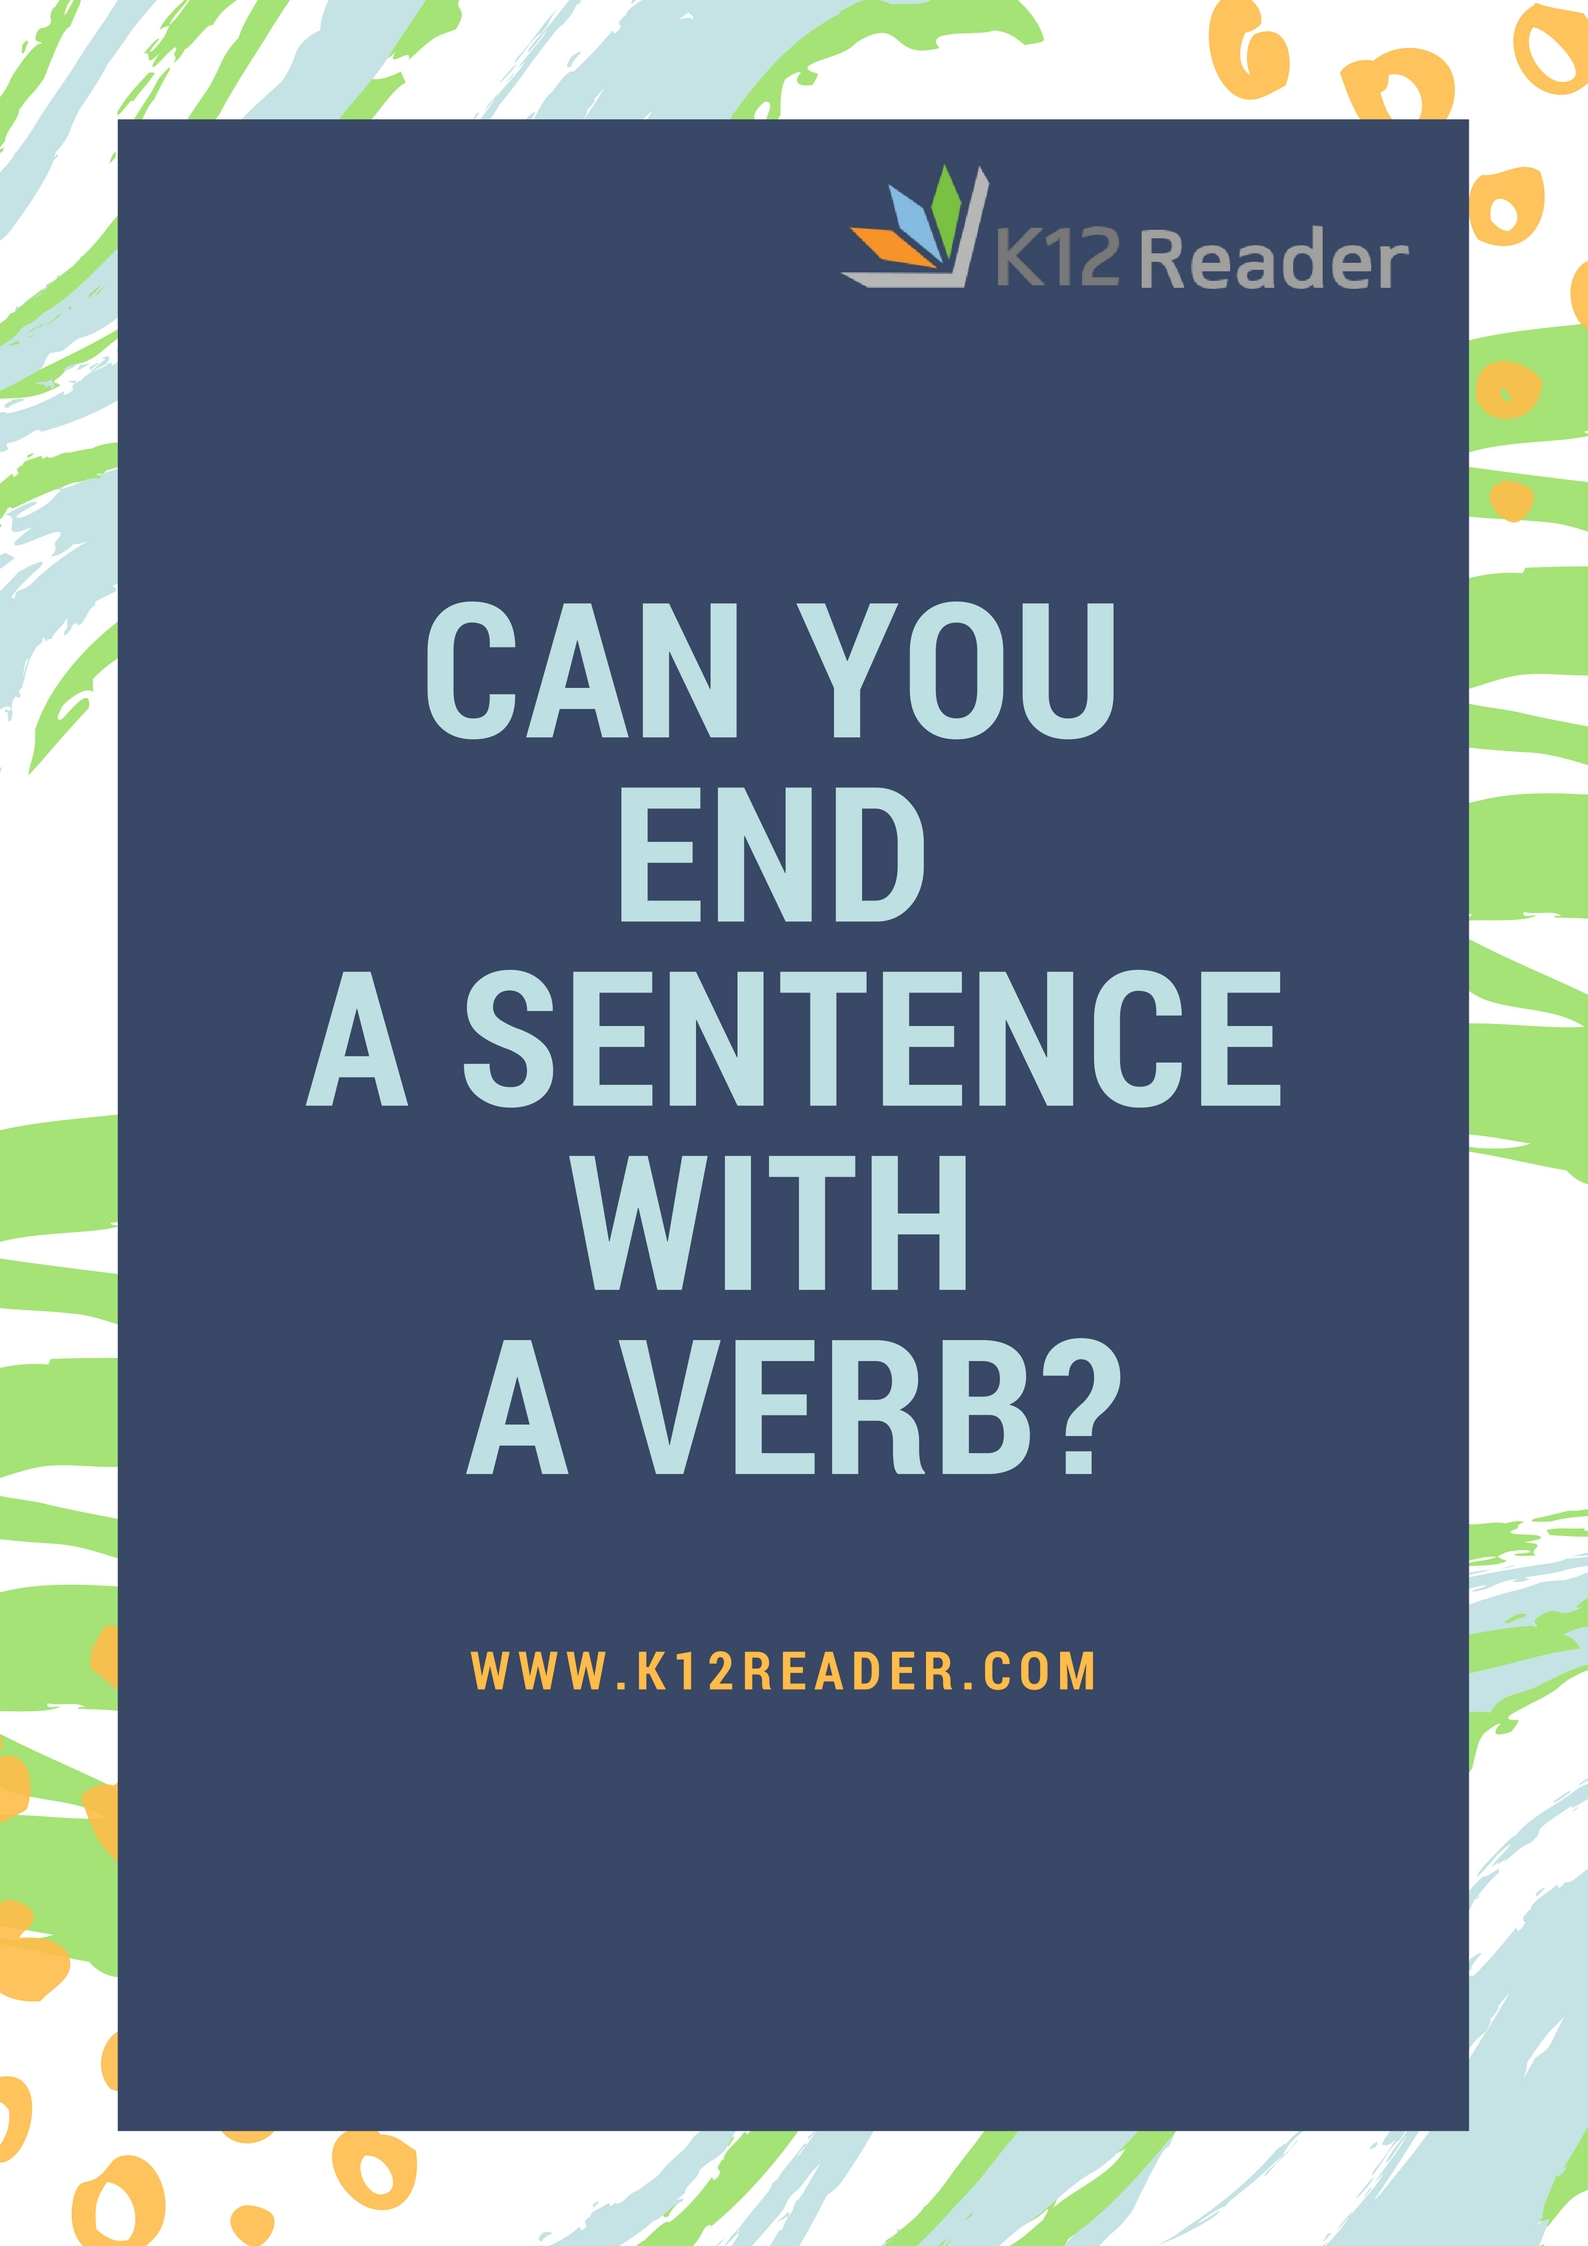 Can You End A Sentence With A Verb